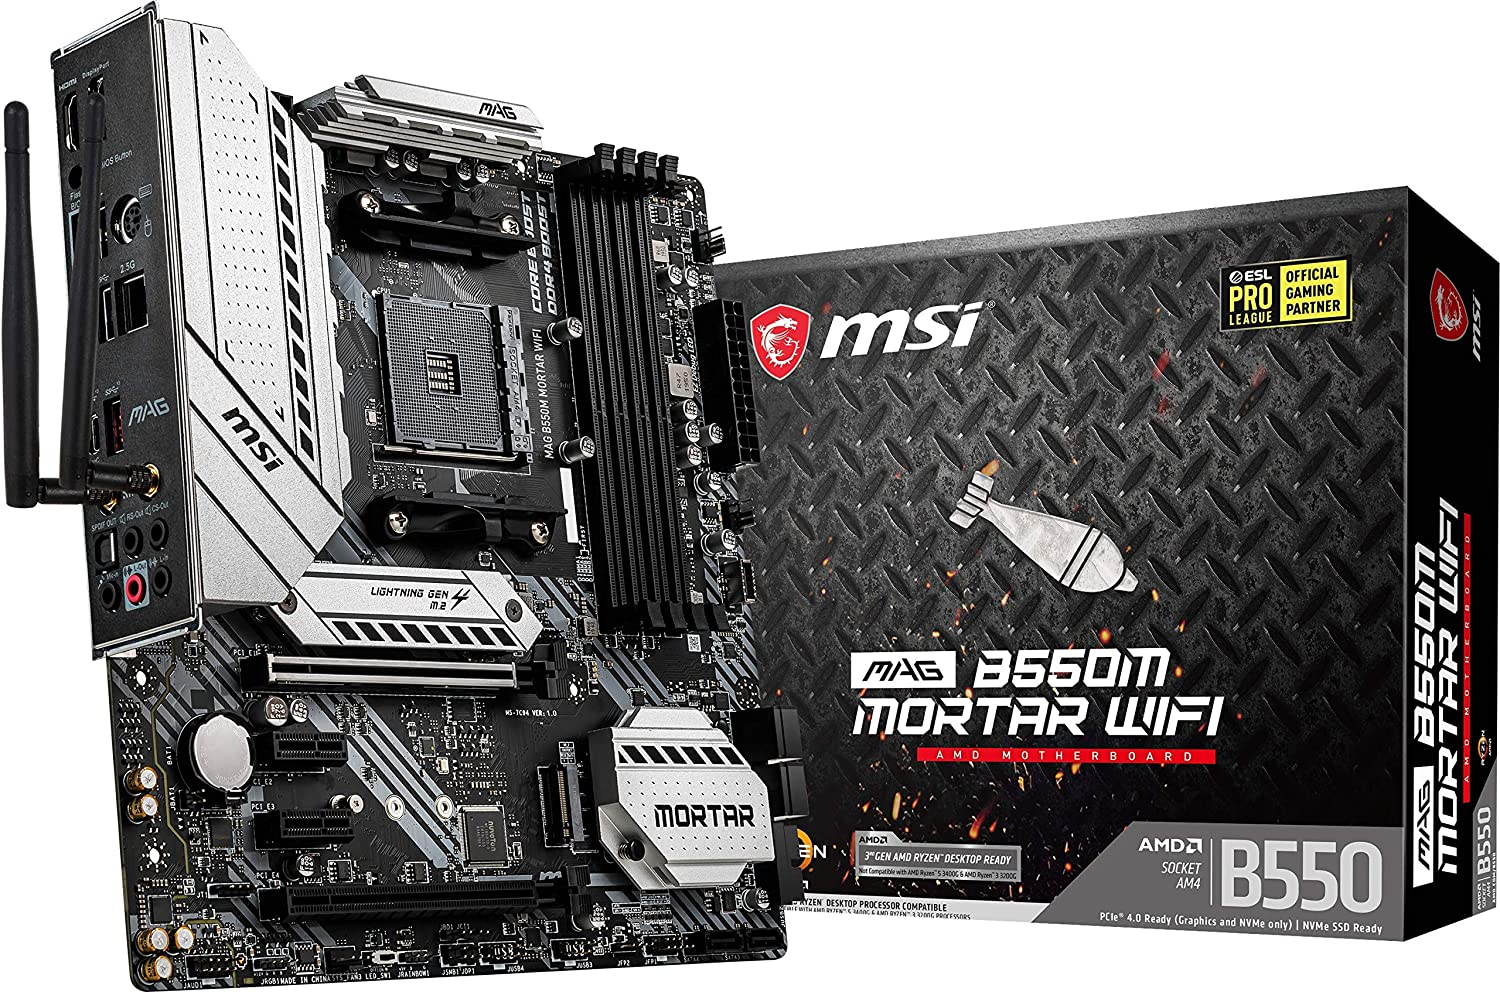 MSI MAG B550M Mortar WiFi Gaming Motherboard (AMD AM4, DDR4, PCIe 4.0, SATA 6Gb/s, M.2, USB 3.2 Gen 2, AX Wi-Fi 6, HDMI/DP, Micro-ATX)